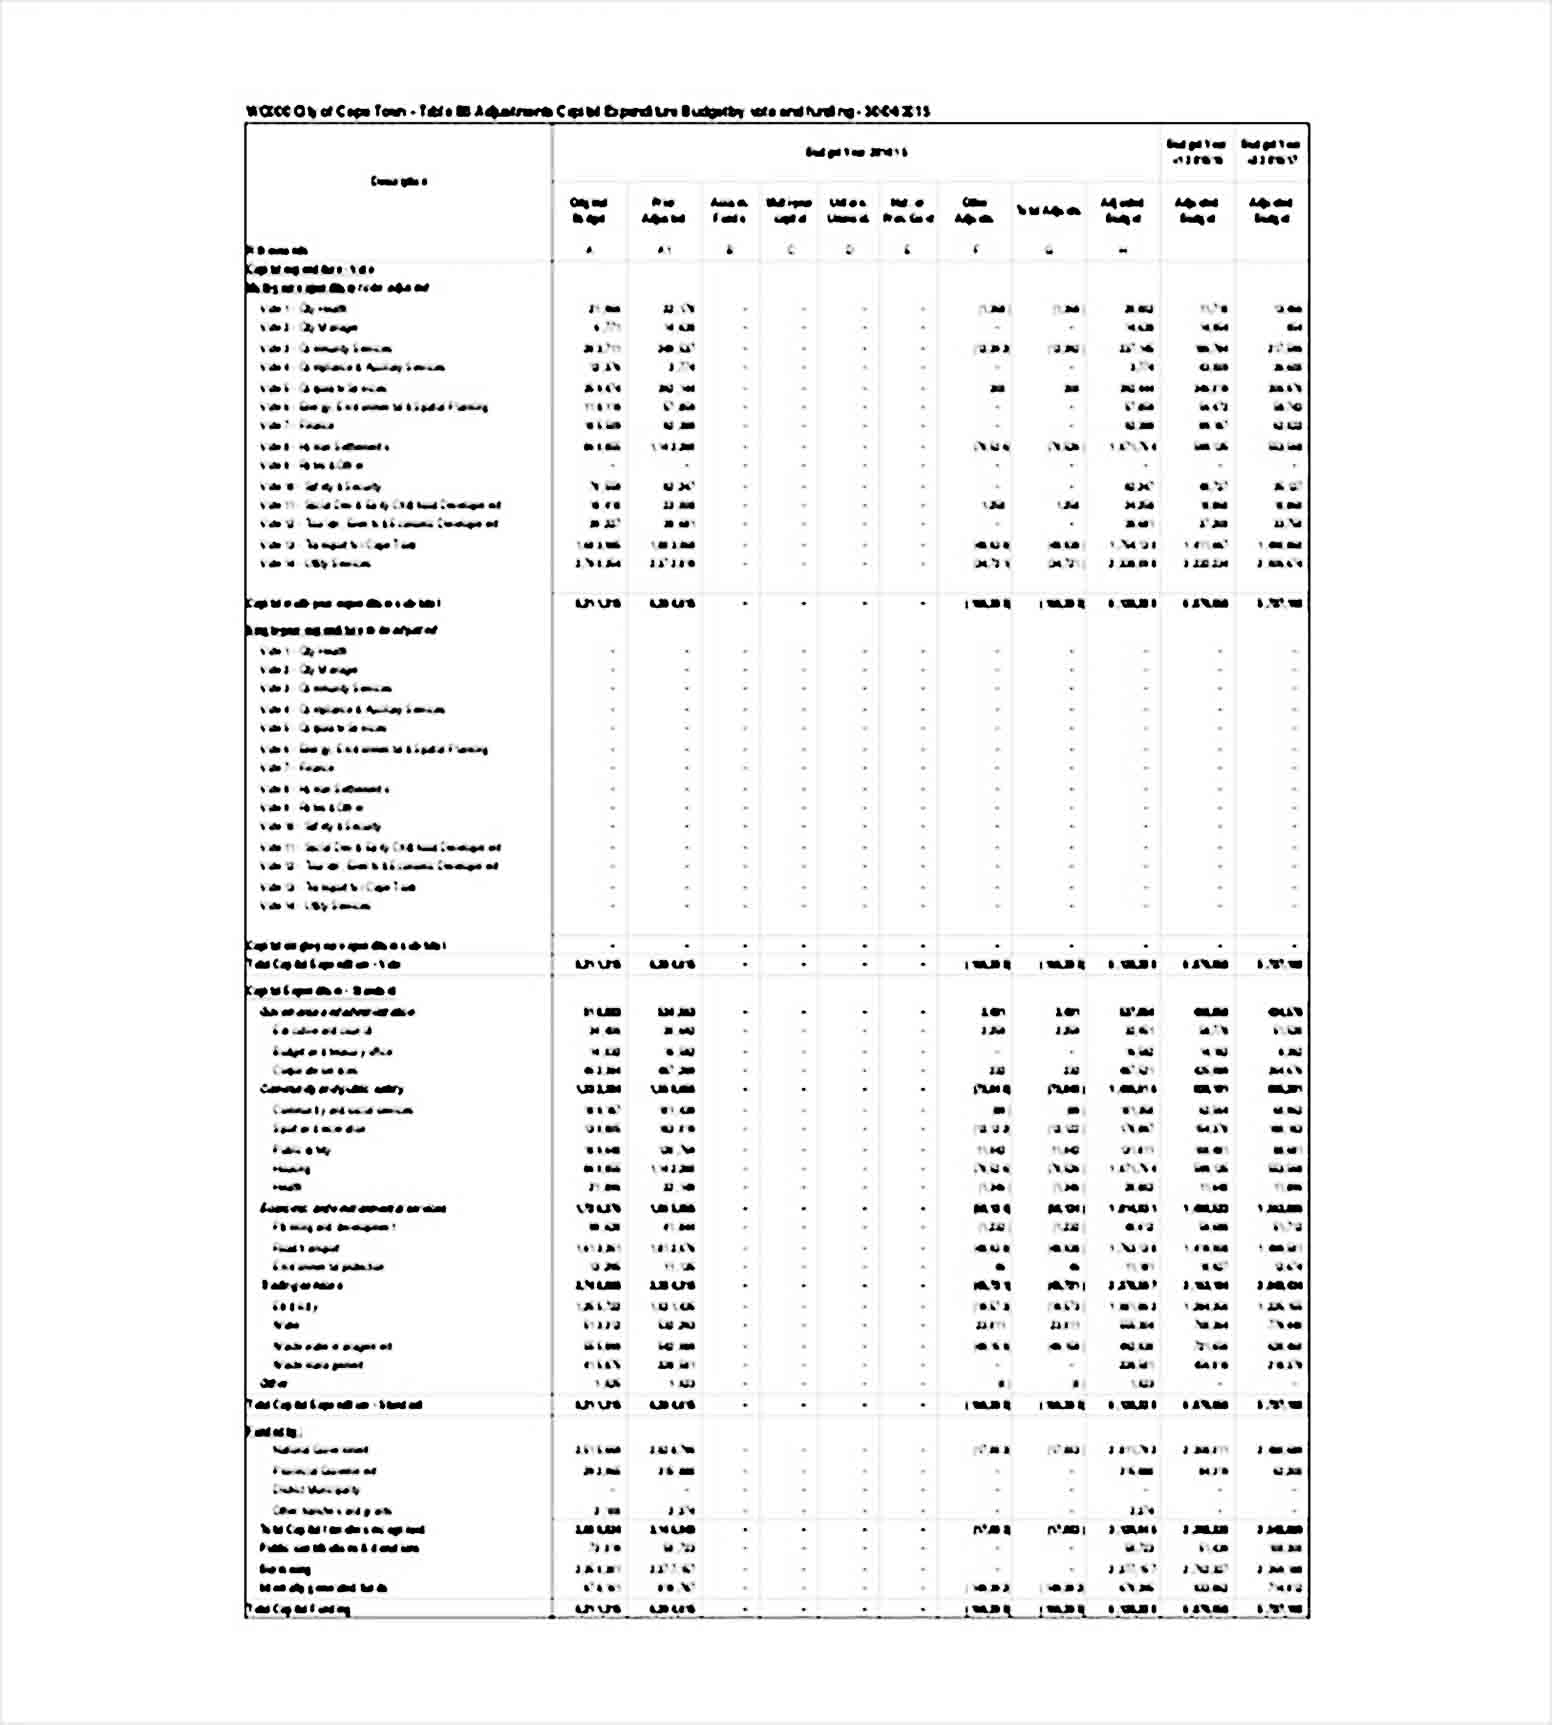 Free Capital Expenditure Budget PDF Download